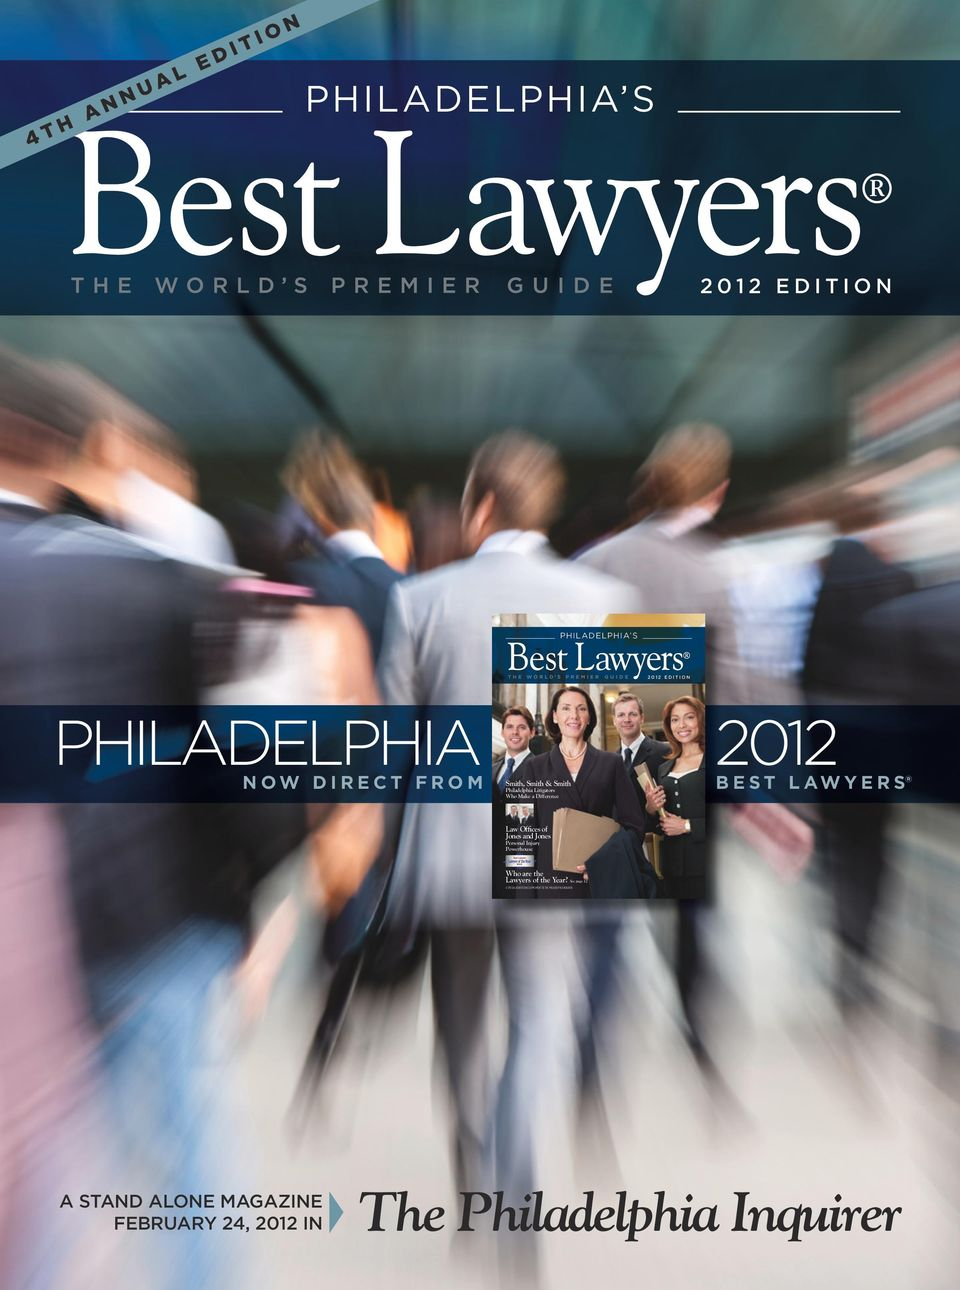 a Difference Law Offices and Personal Injury Powerhouse Who are the Lawyers the Year?